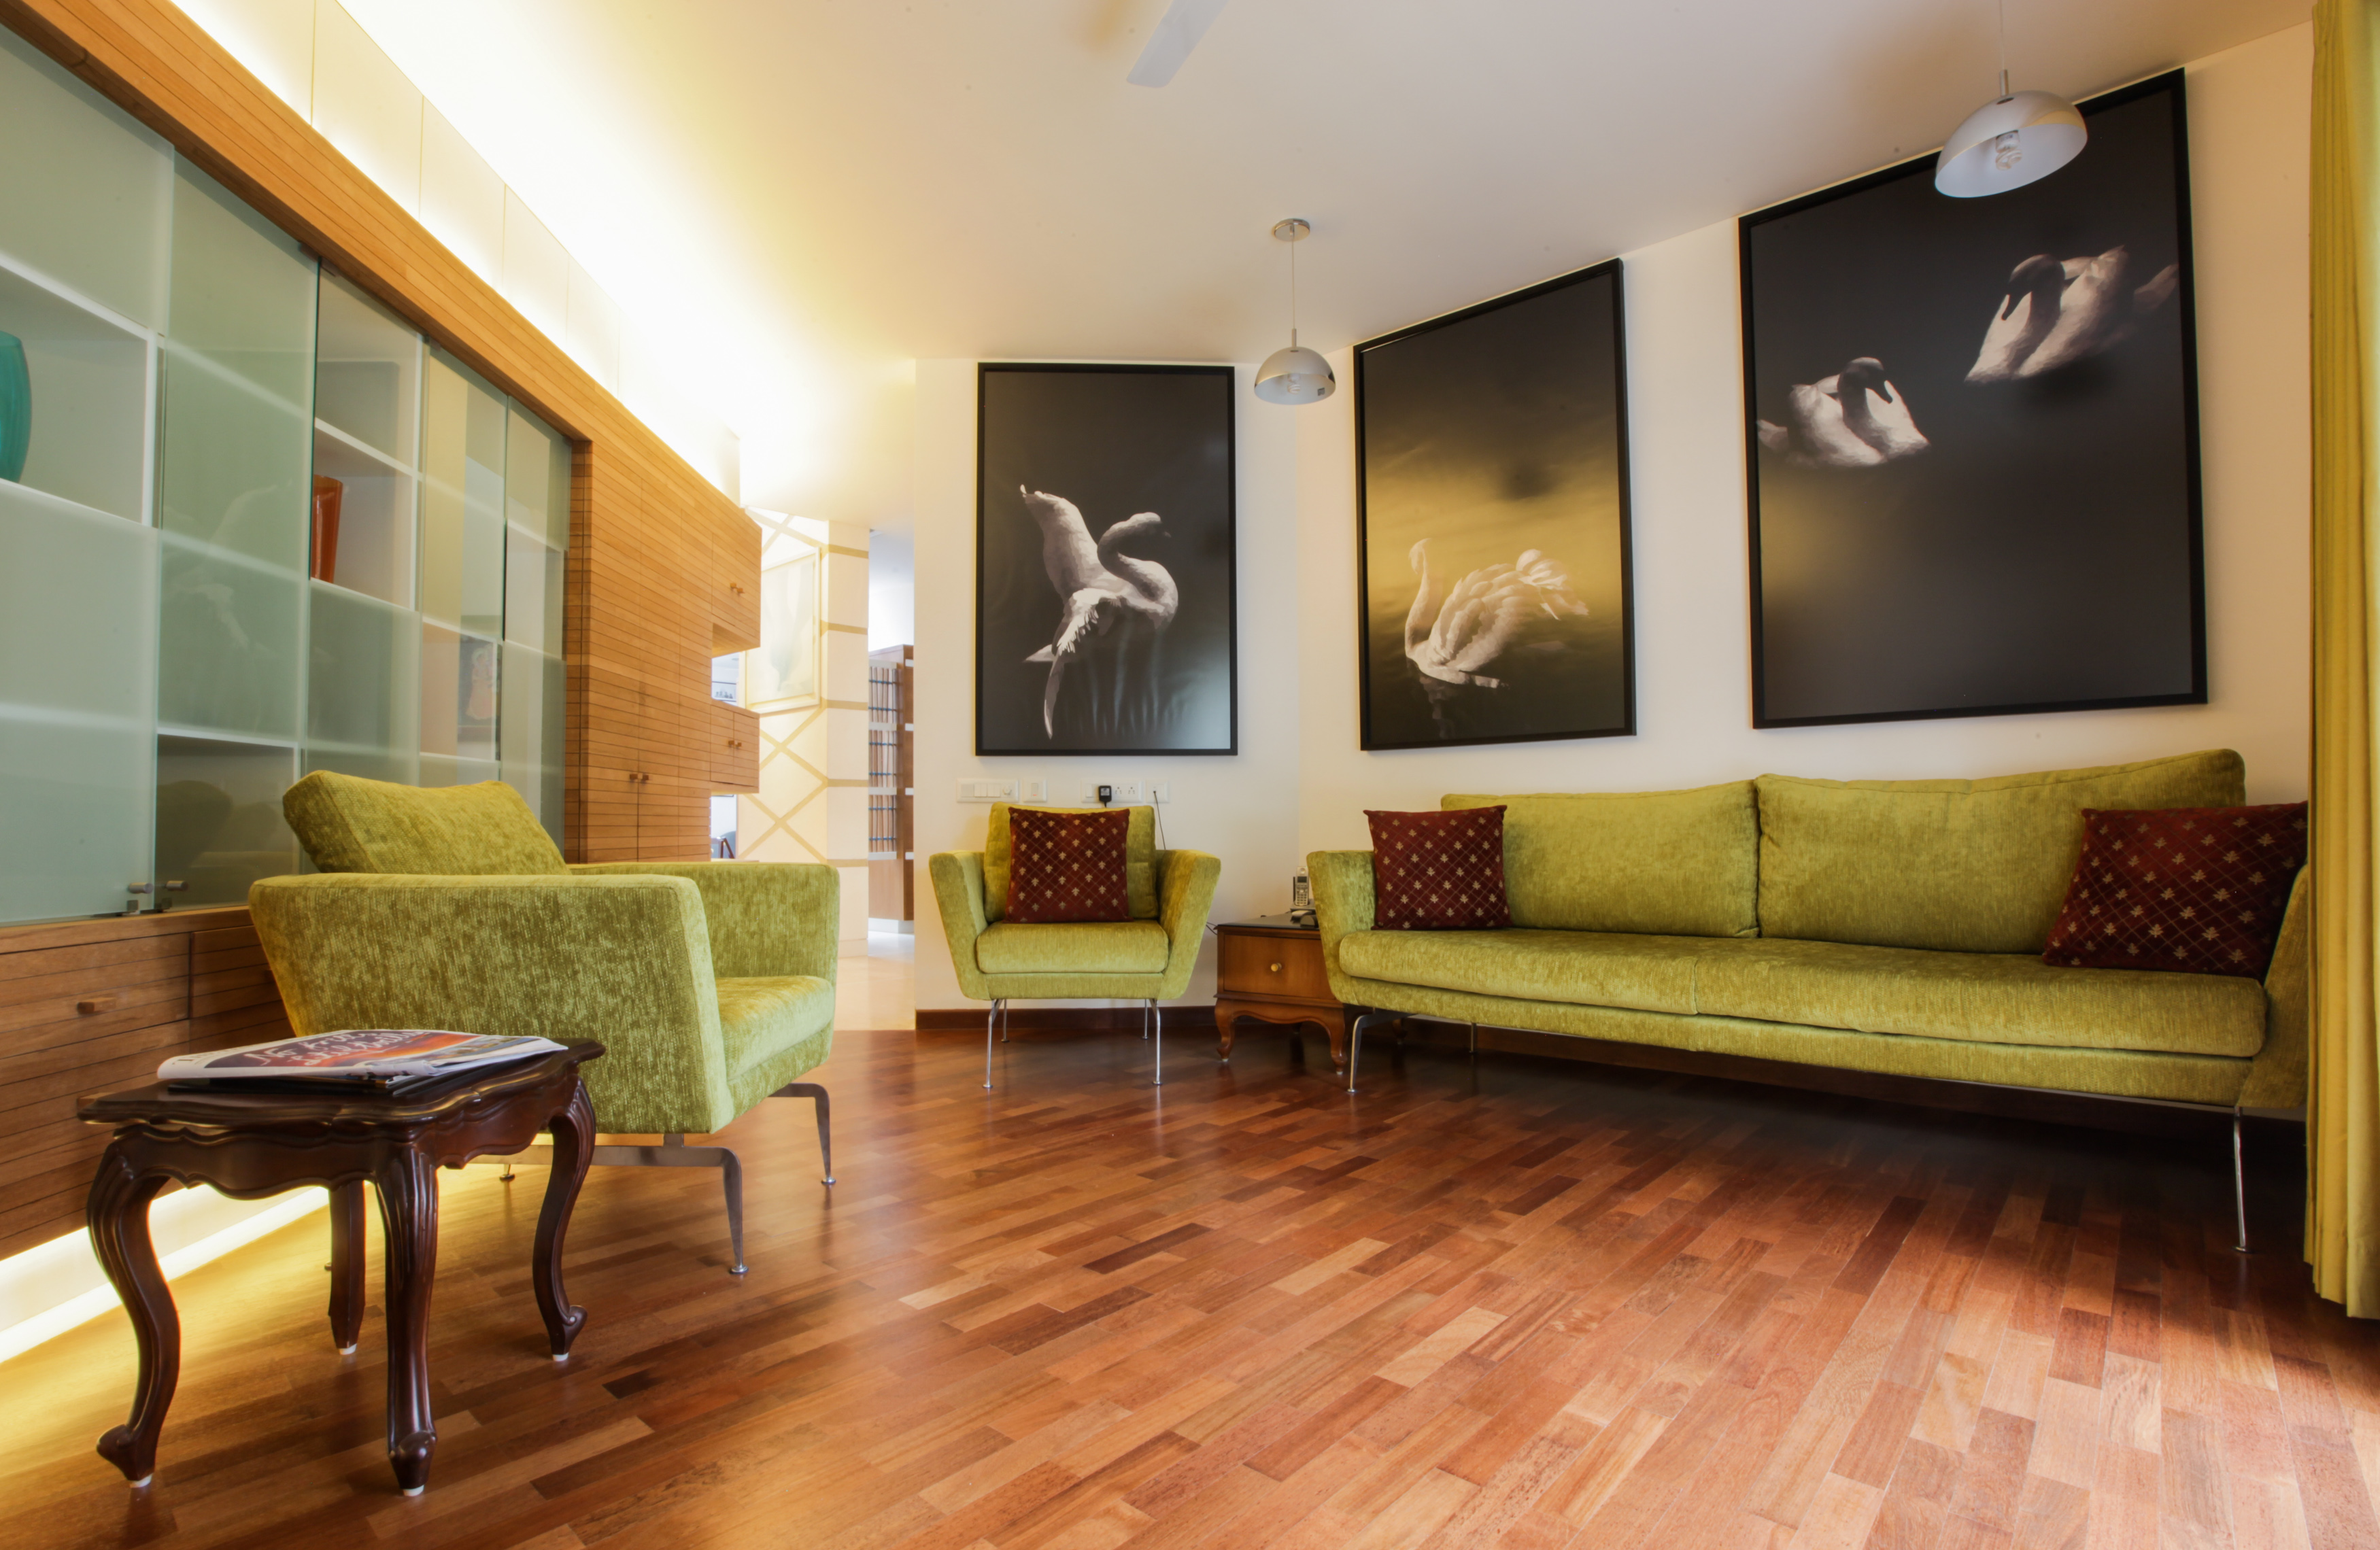 The family room sitting area